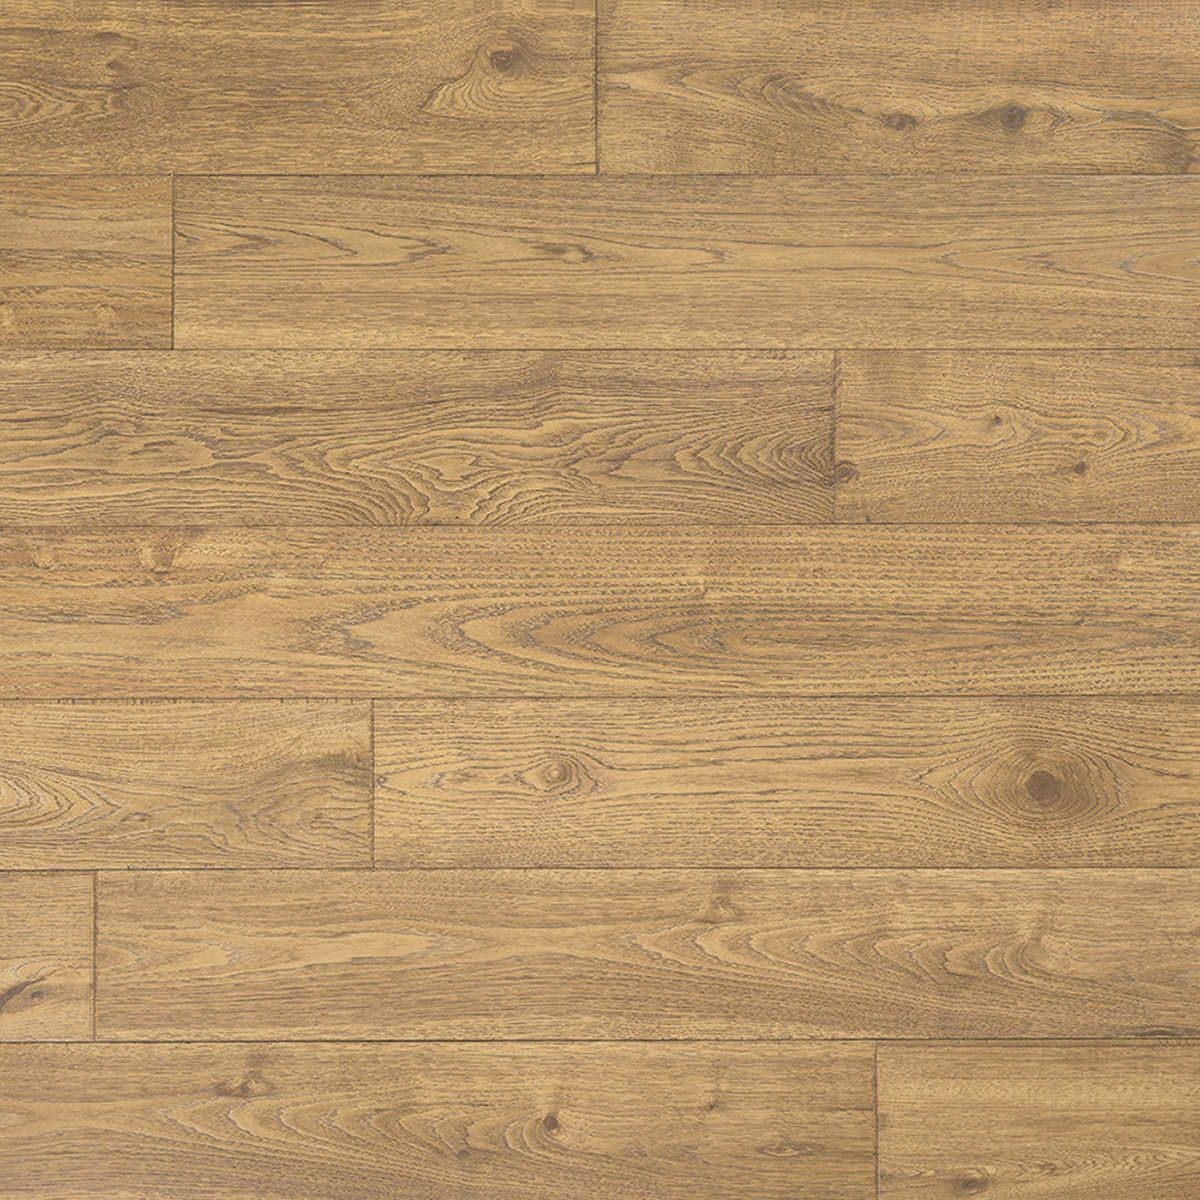 Costco Harmonics Warm Honey Oak Laminate Moisture Resistant